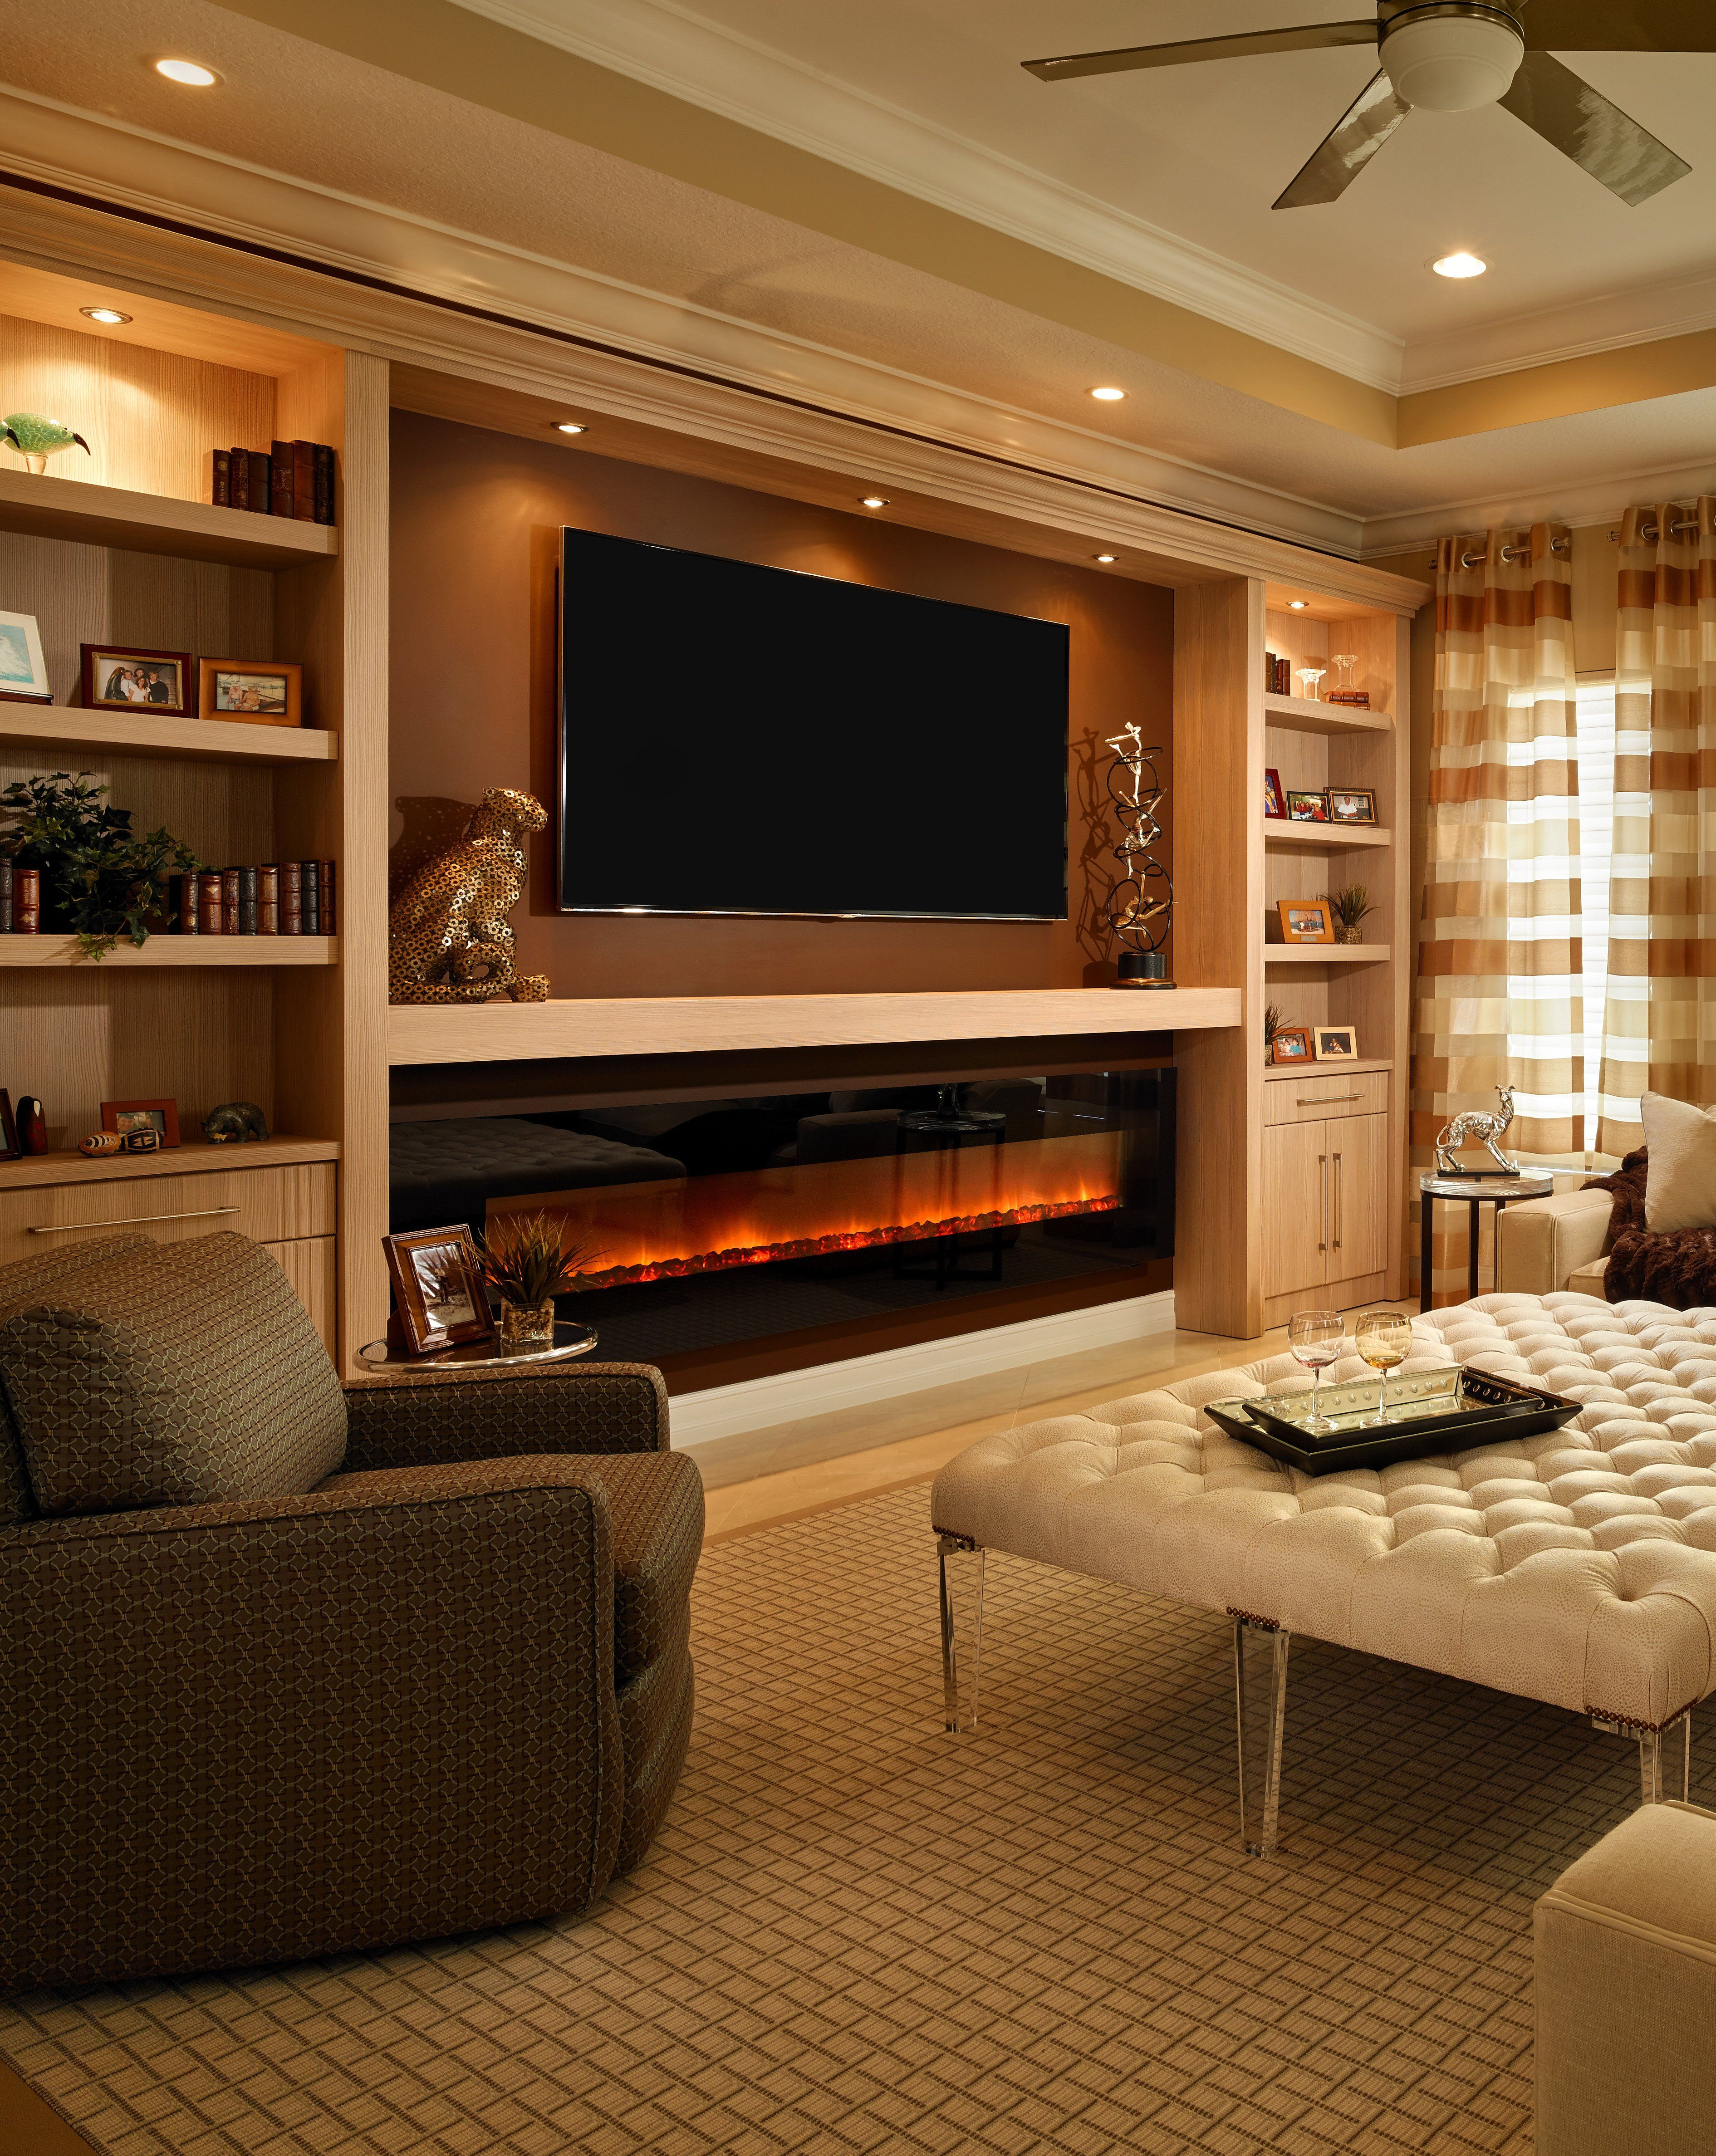 Electric Fireplace Built Into Wall Modern Electric Fireplaces Details And Vignettes Wall Mounted